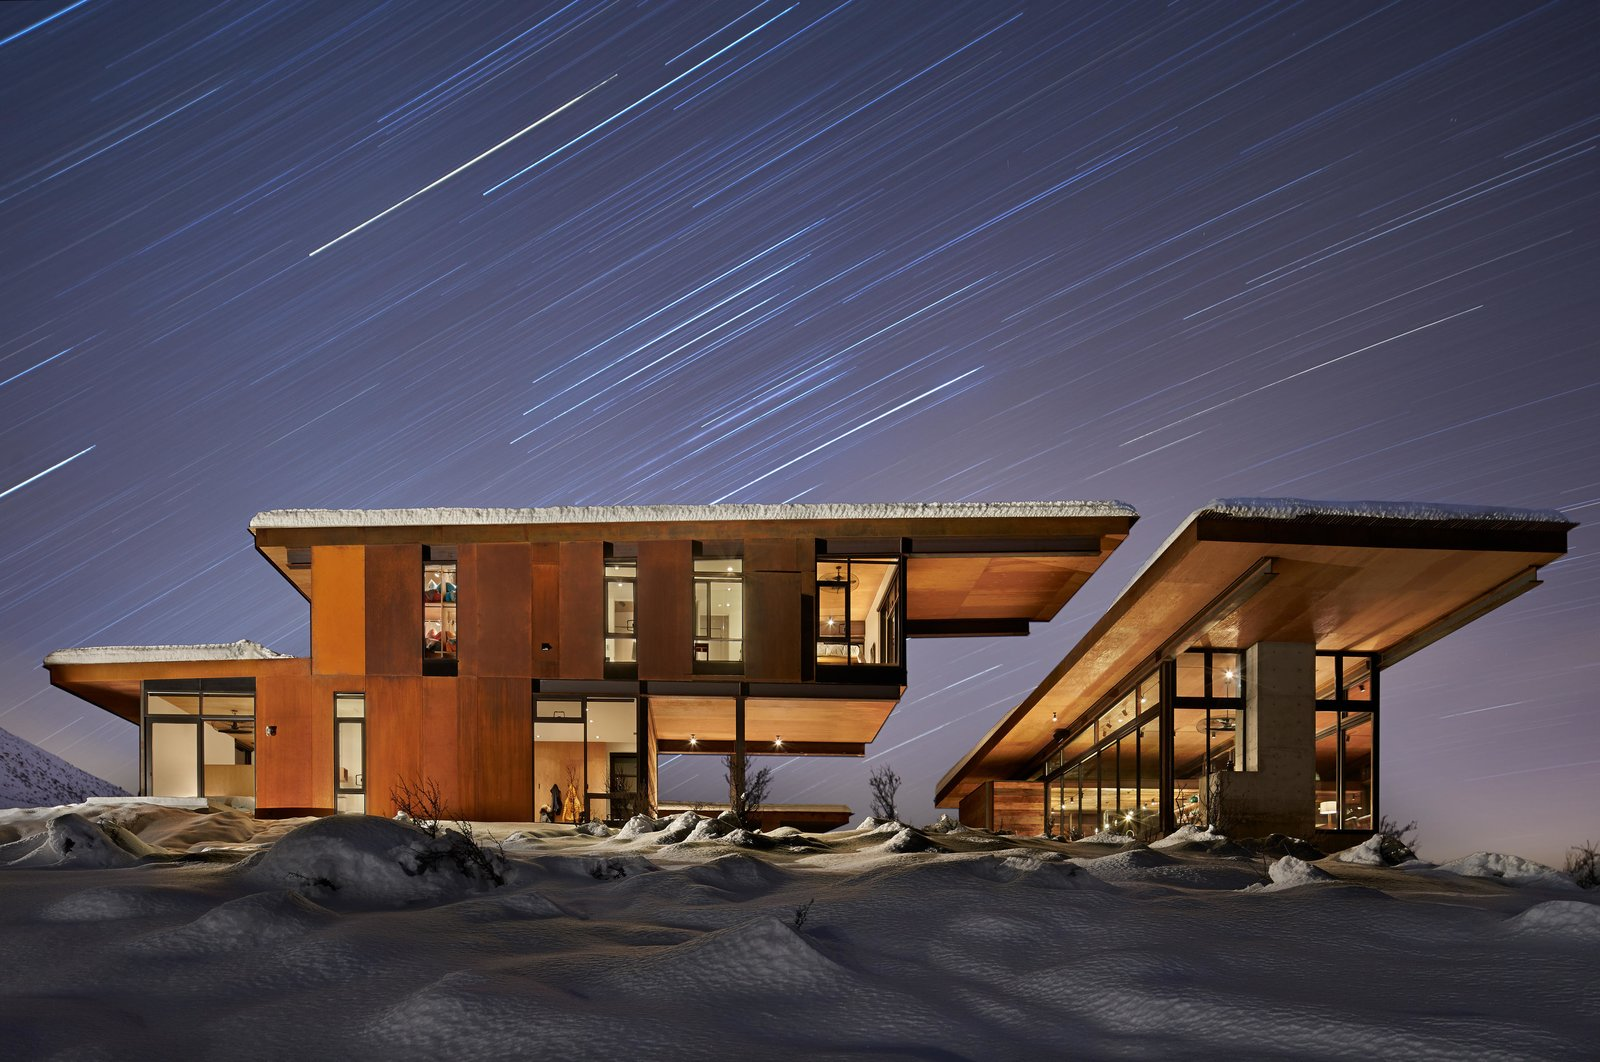 Studhorse | Olson Kundig Tagged: Exterior, Cabin Building Type, House, Flat RoofLine, and Metal Siding Material.  Studhorse by Olson Kundig